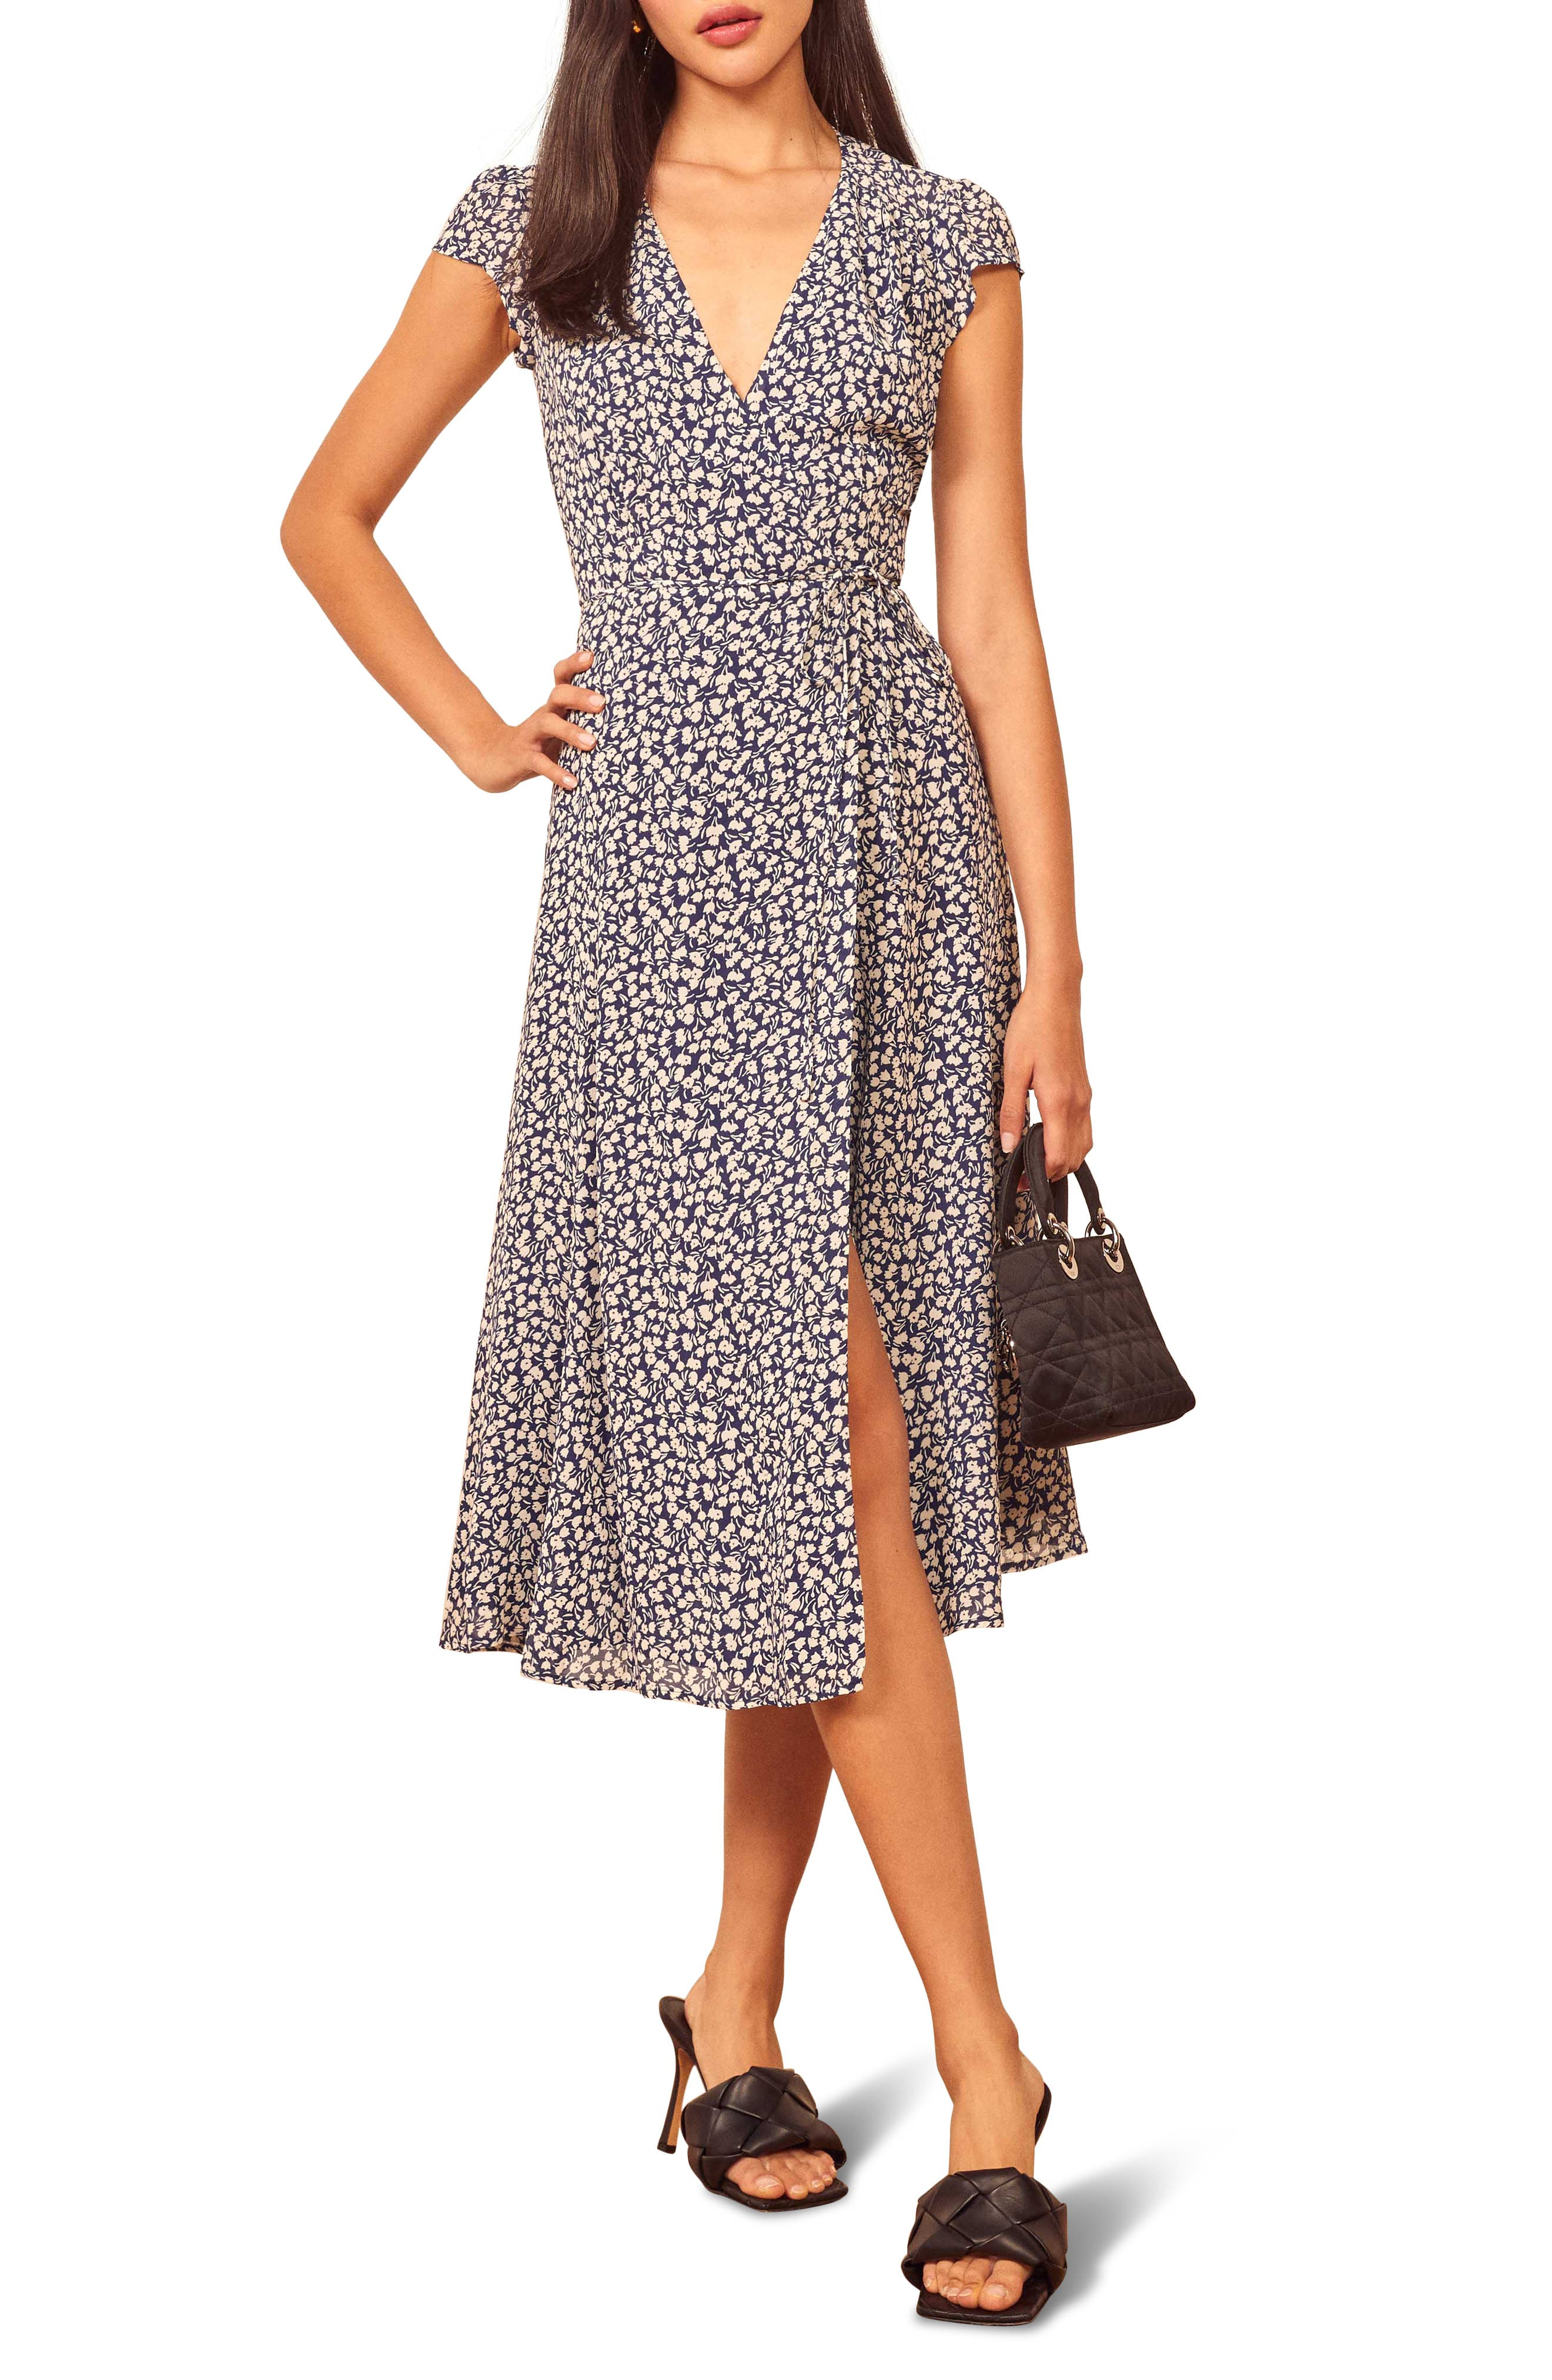 Ladylike for the bold, this fluttery georgette wrap dress shows major leg while retaining a little innocence with soft gathered detail at the bodice. Style Name: Reformation Carina Midi Wrap Dress (Regular & Plus Size) (Nordstrom Exclusive). Style Number: 5649734. Available in stores.